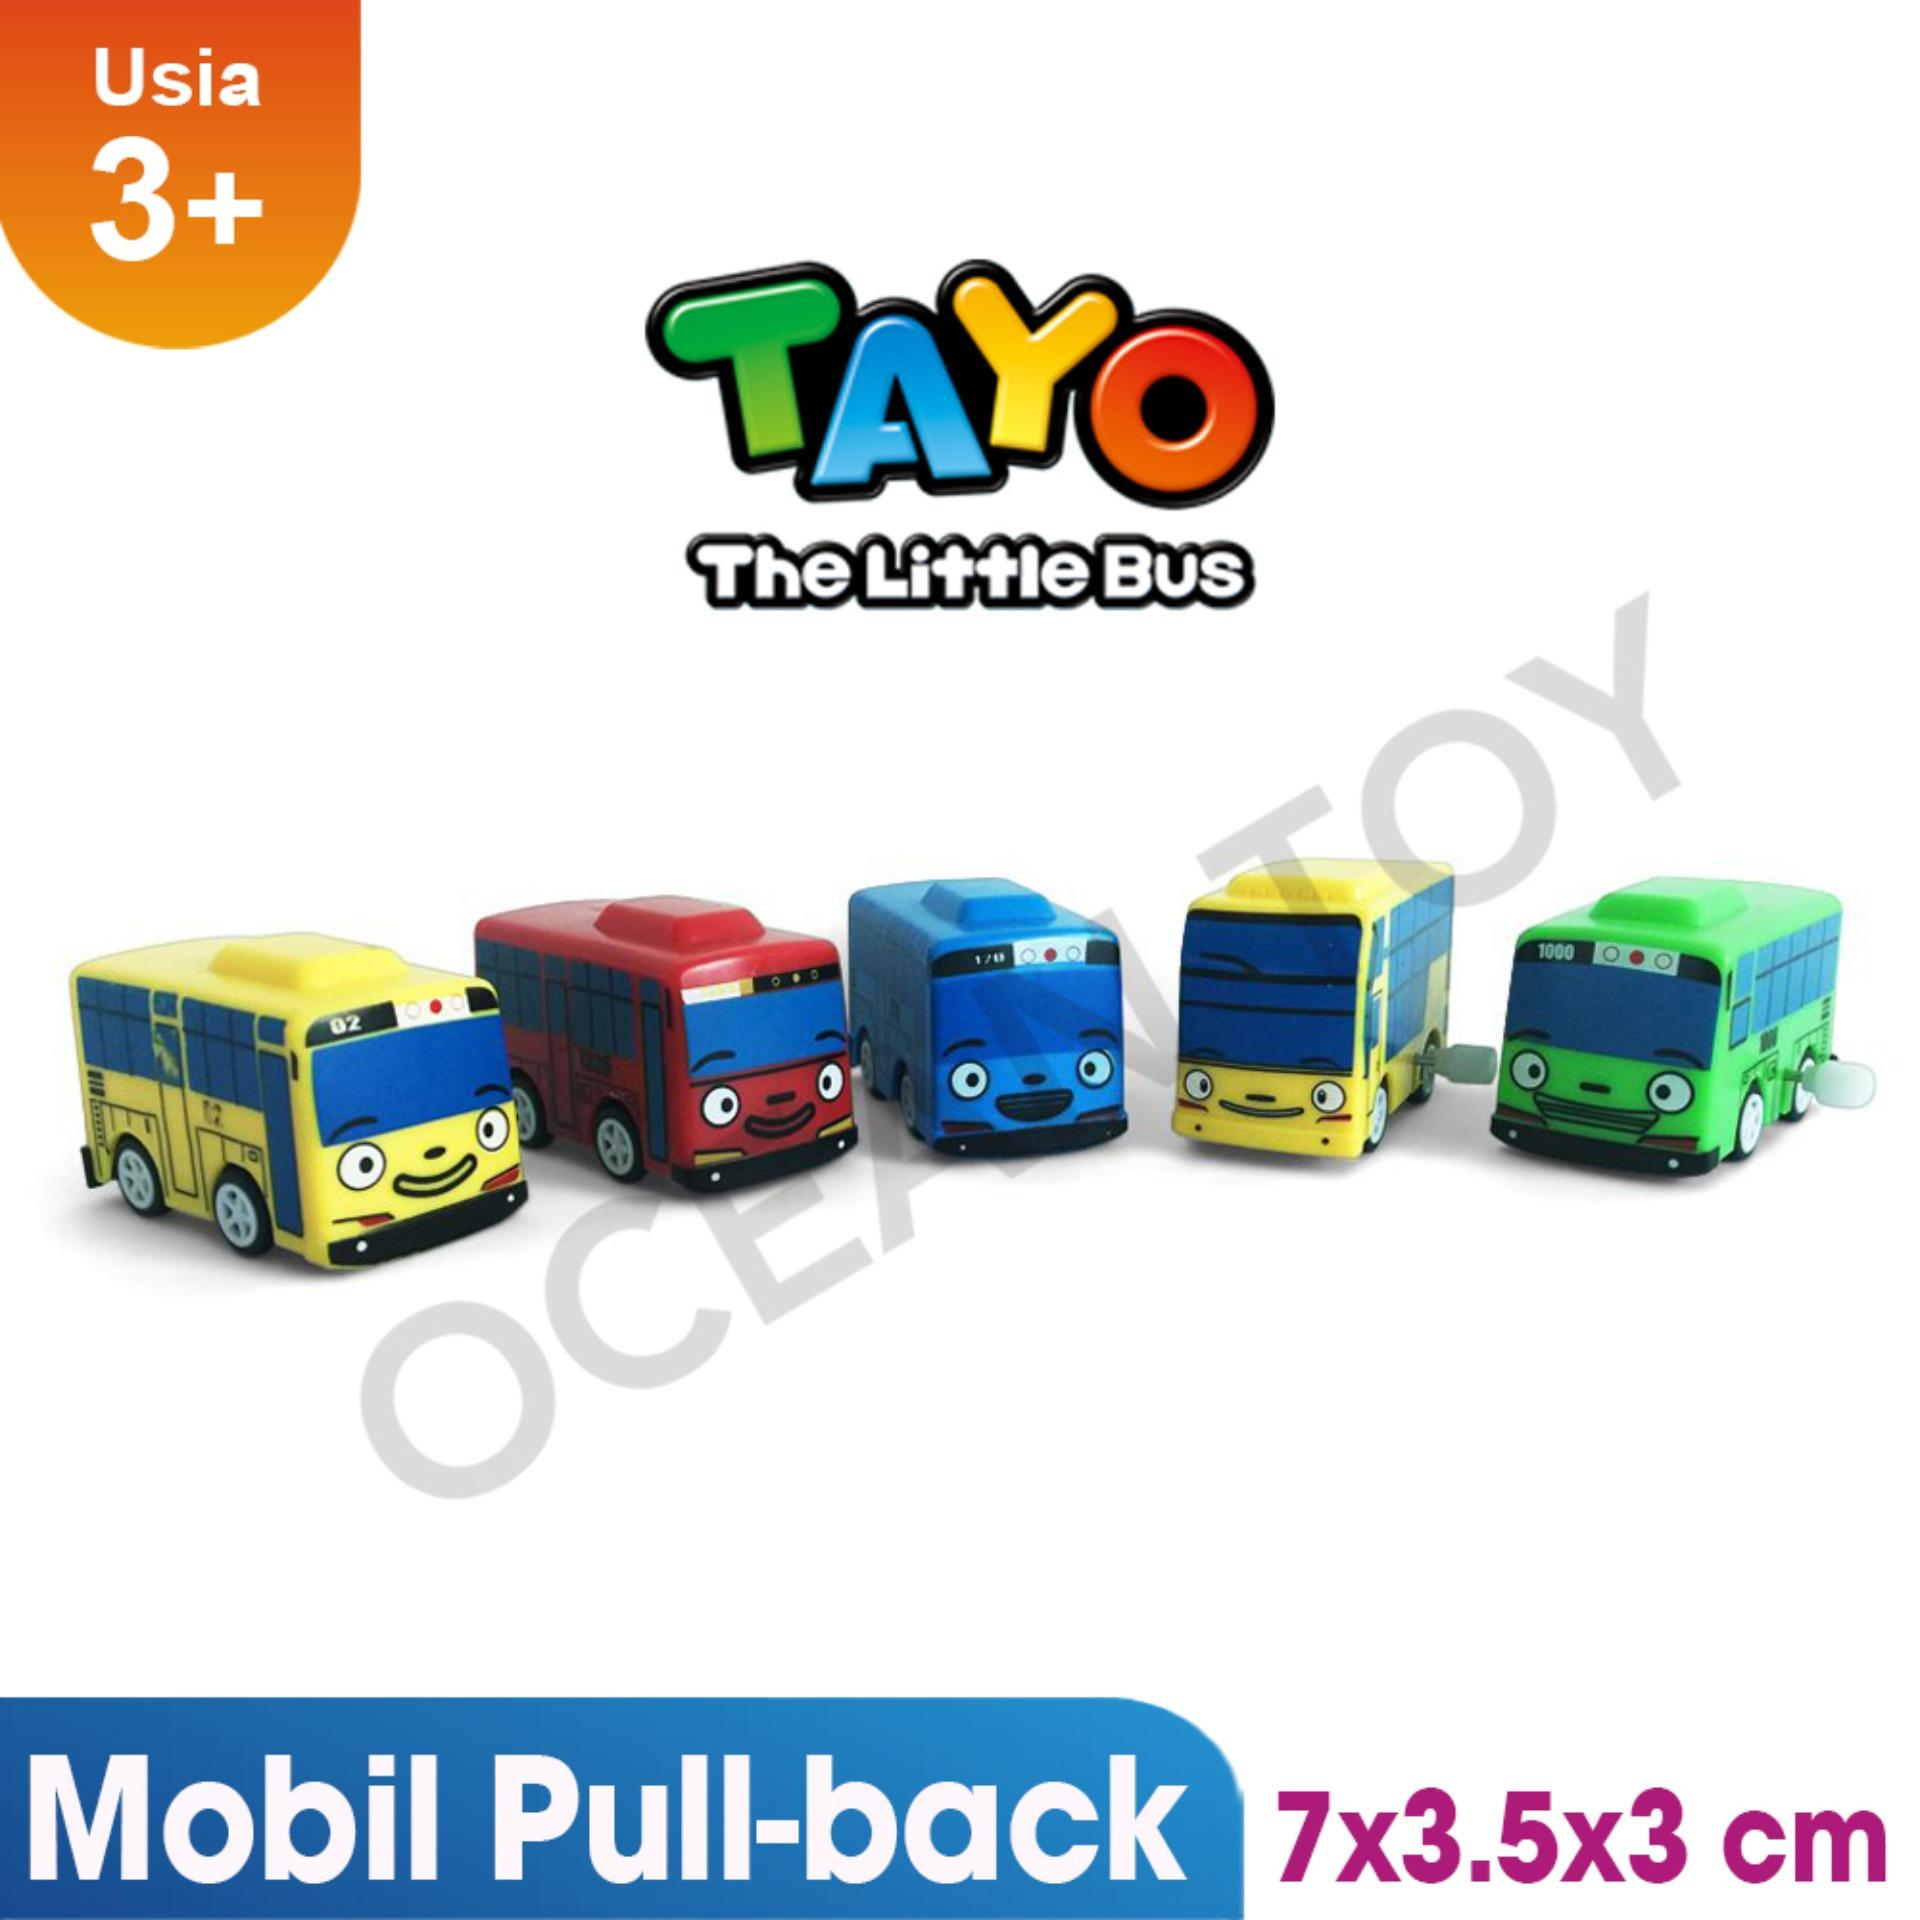 Ocean Toy The Little Bus Tayo Mainan Anak Isi 5 Pcs - DK01